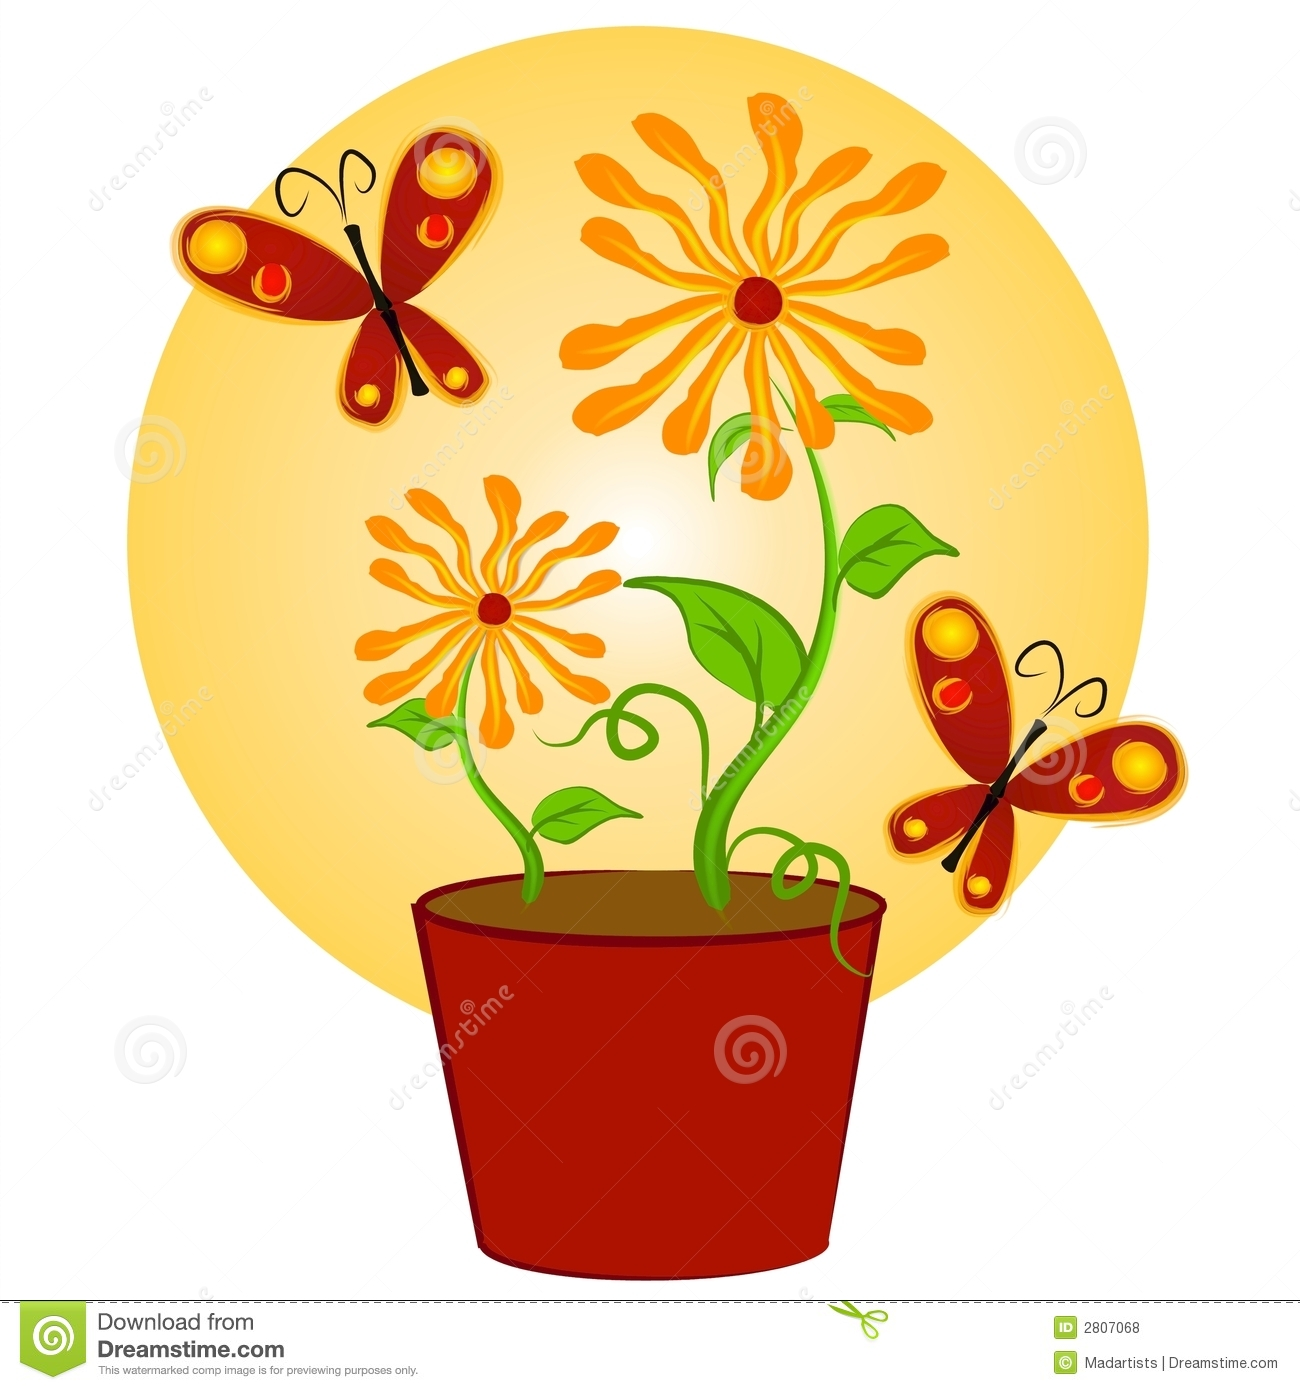 Butterflies Flowers Clip Art 1 Royalty Free Stock Photo.